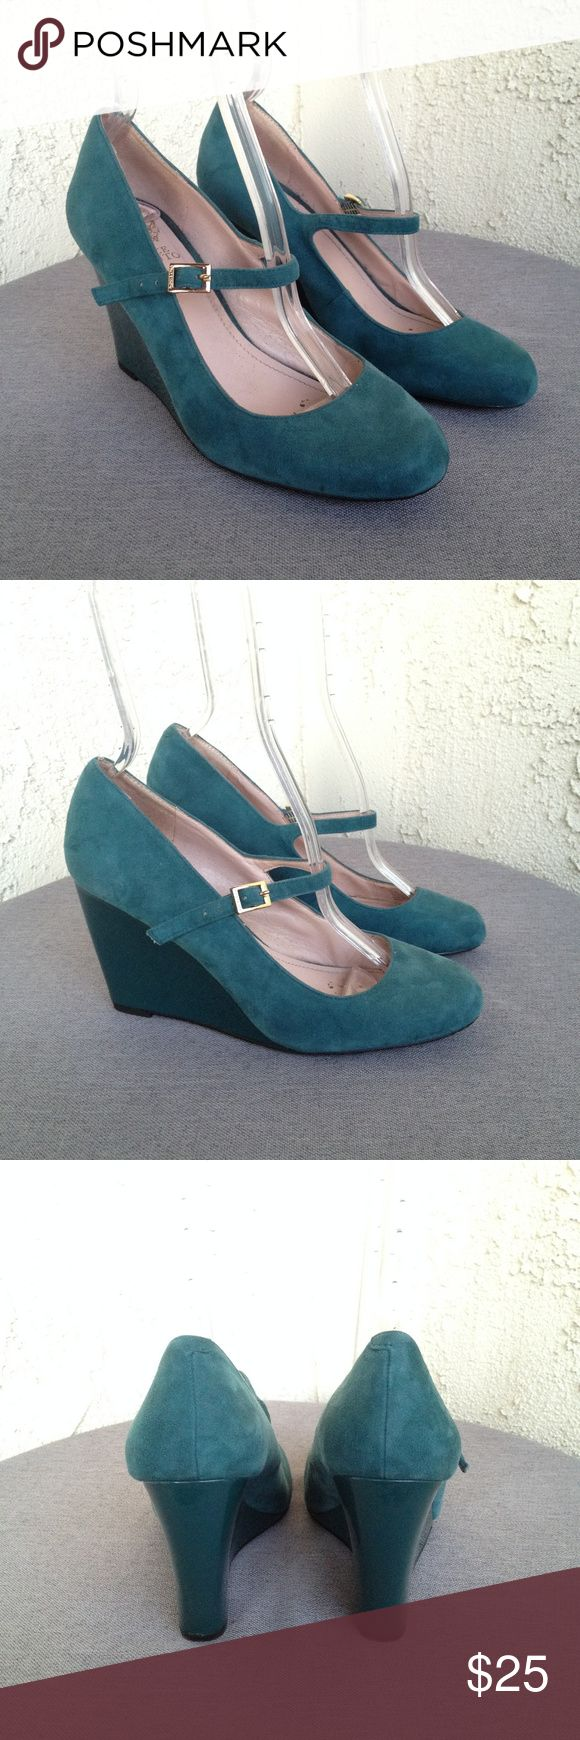 """Vince Camuto Blue Suede Leather Wedges Heels 8.5 Vince Camuto Women's Heels Magie Teal Blue Suede Patent Leather Mary Jane Wedges  Type: Heels  Style: Wedges / Mary Janes Style Name: Magie Brand: Vince Camuto Size: 8.5 Heel Height: 3"""" Material: Leather Upper / Manmade Lining / Manmade Sole Color: Teal Blue Condition: Great, Preowned Condition Country of Manufacturer: China  Stock Number: Vince Camuto Shoes Wedges"""